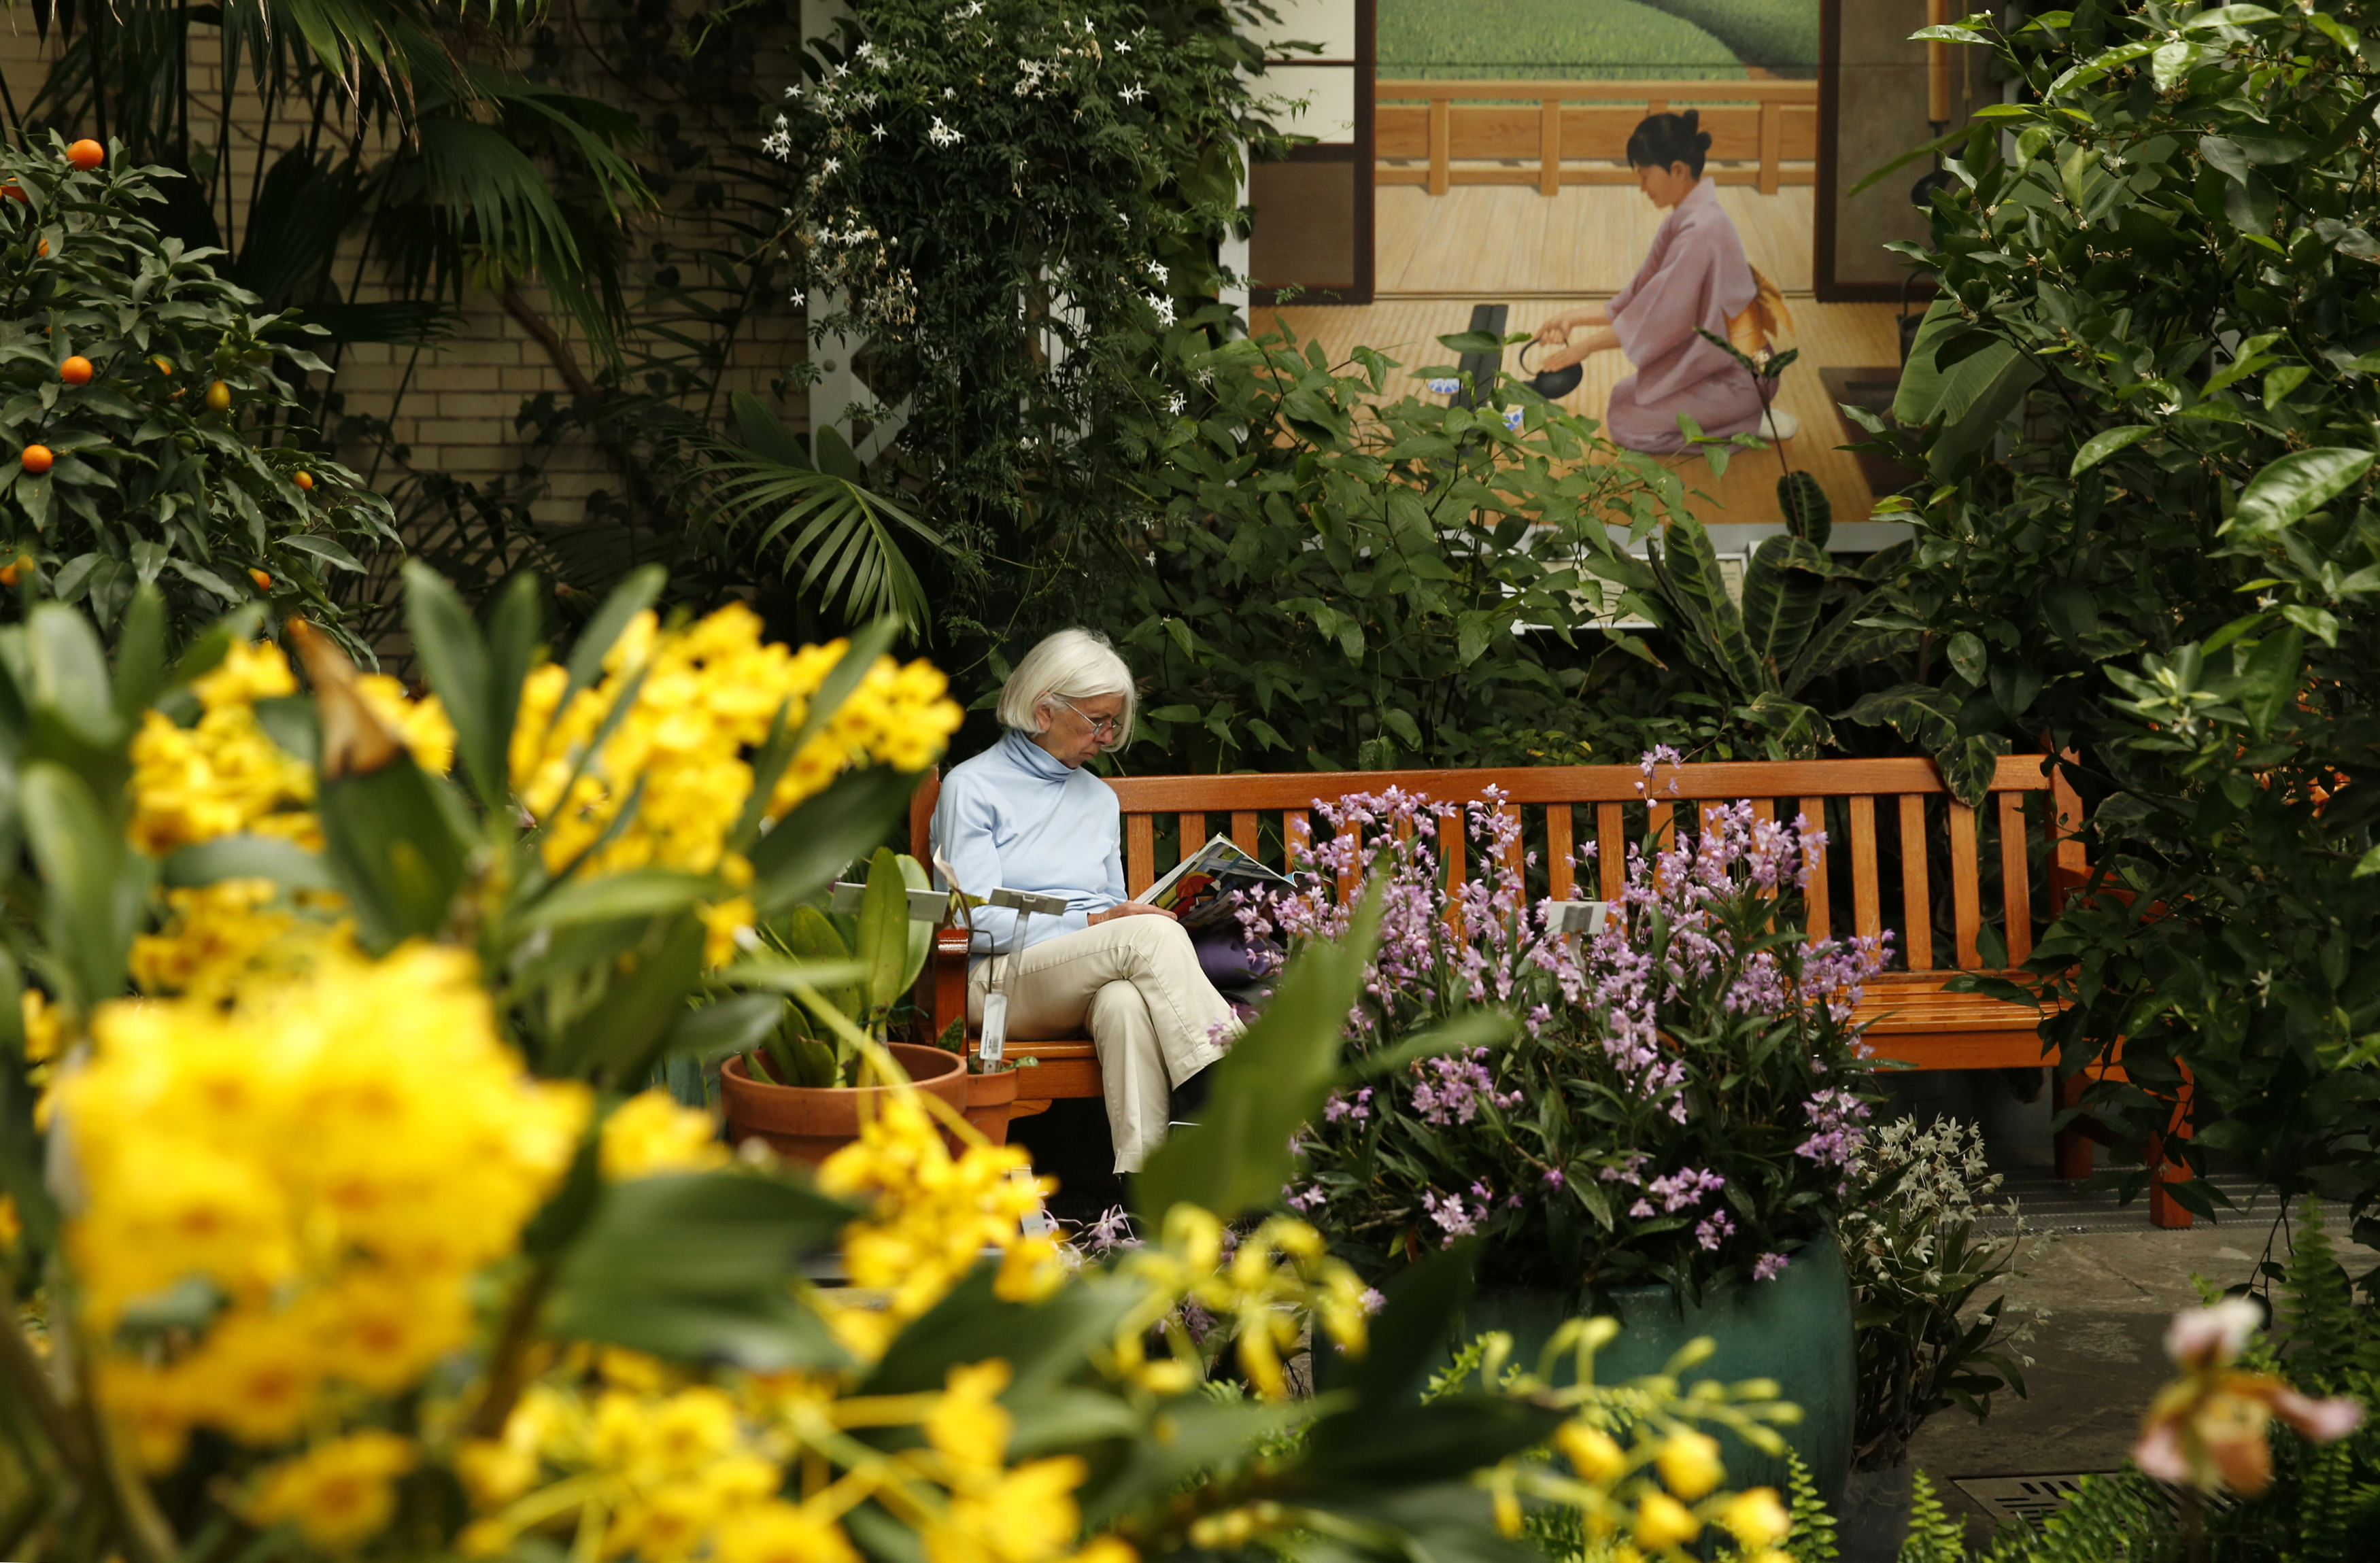 A woman reads a magazine while enjoying classical music at the exhibit  Orchid Symphony  in the conservatory of the United States Botanic Garden in Washington, D.C., on March 12, 2014.